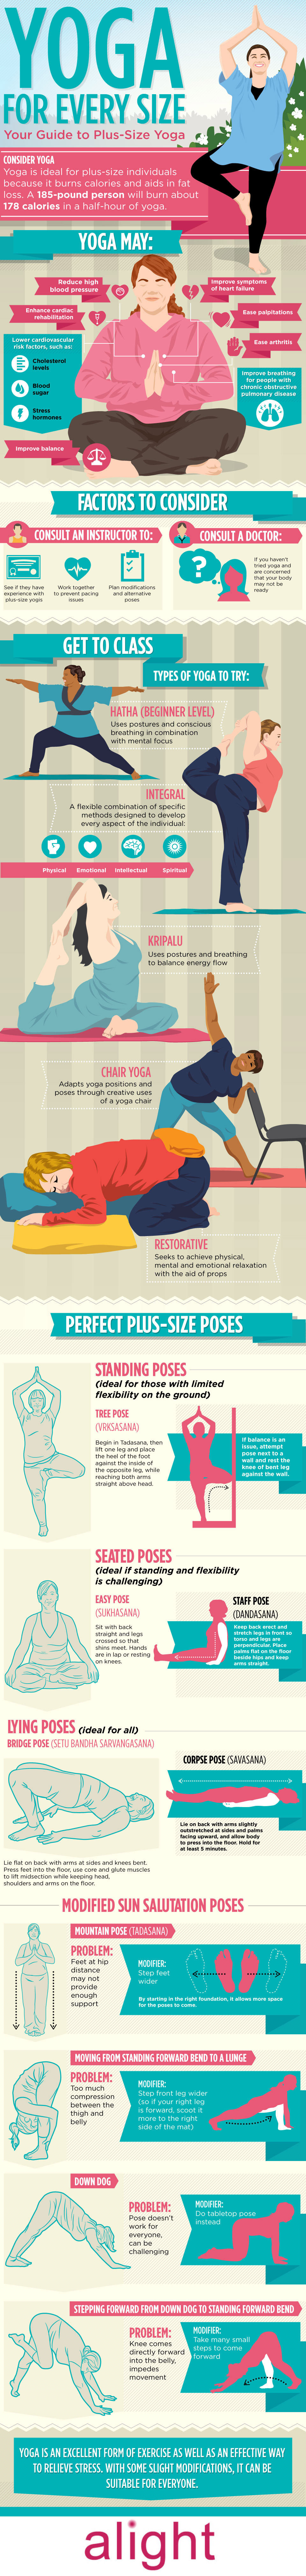 plus-size-yoga from alight.jpg